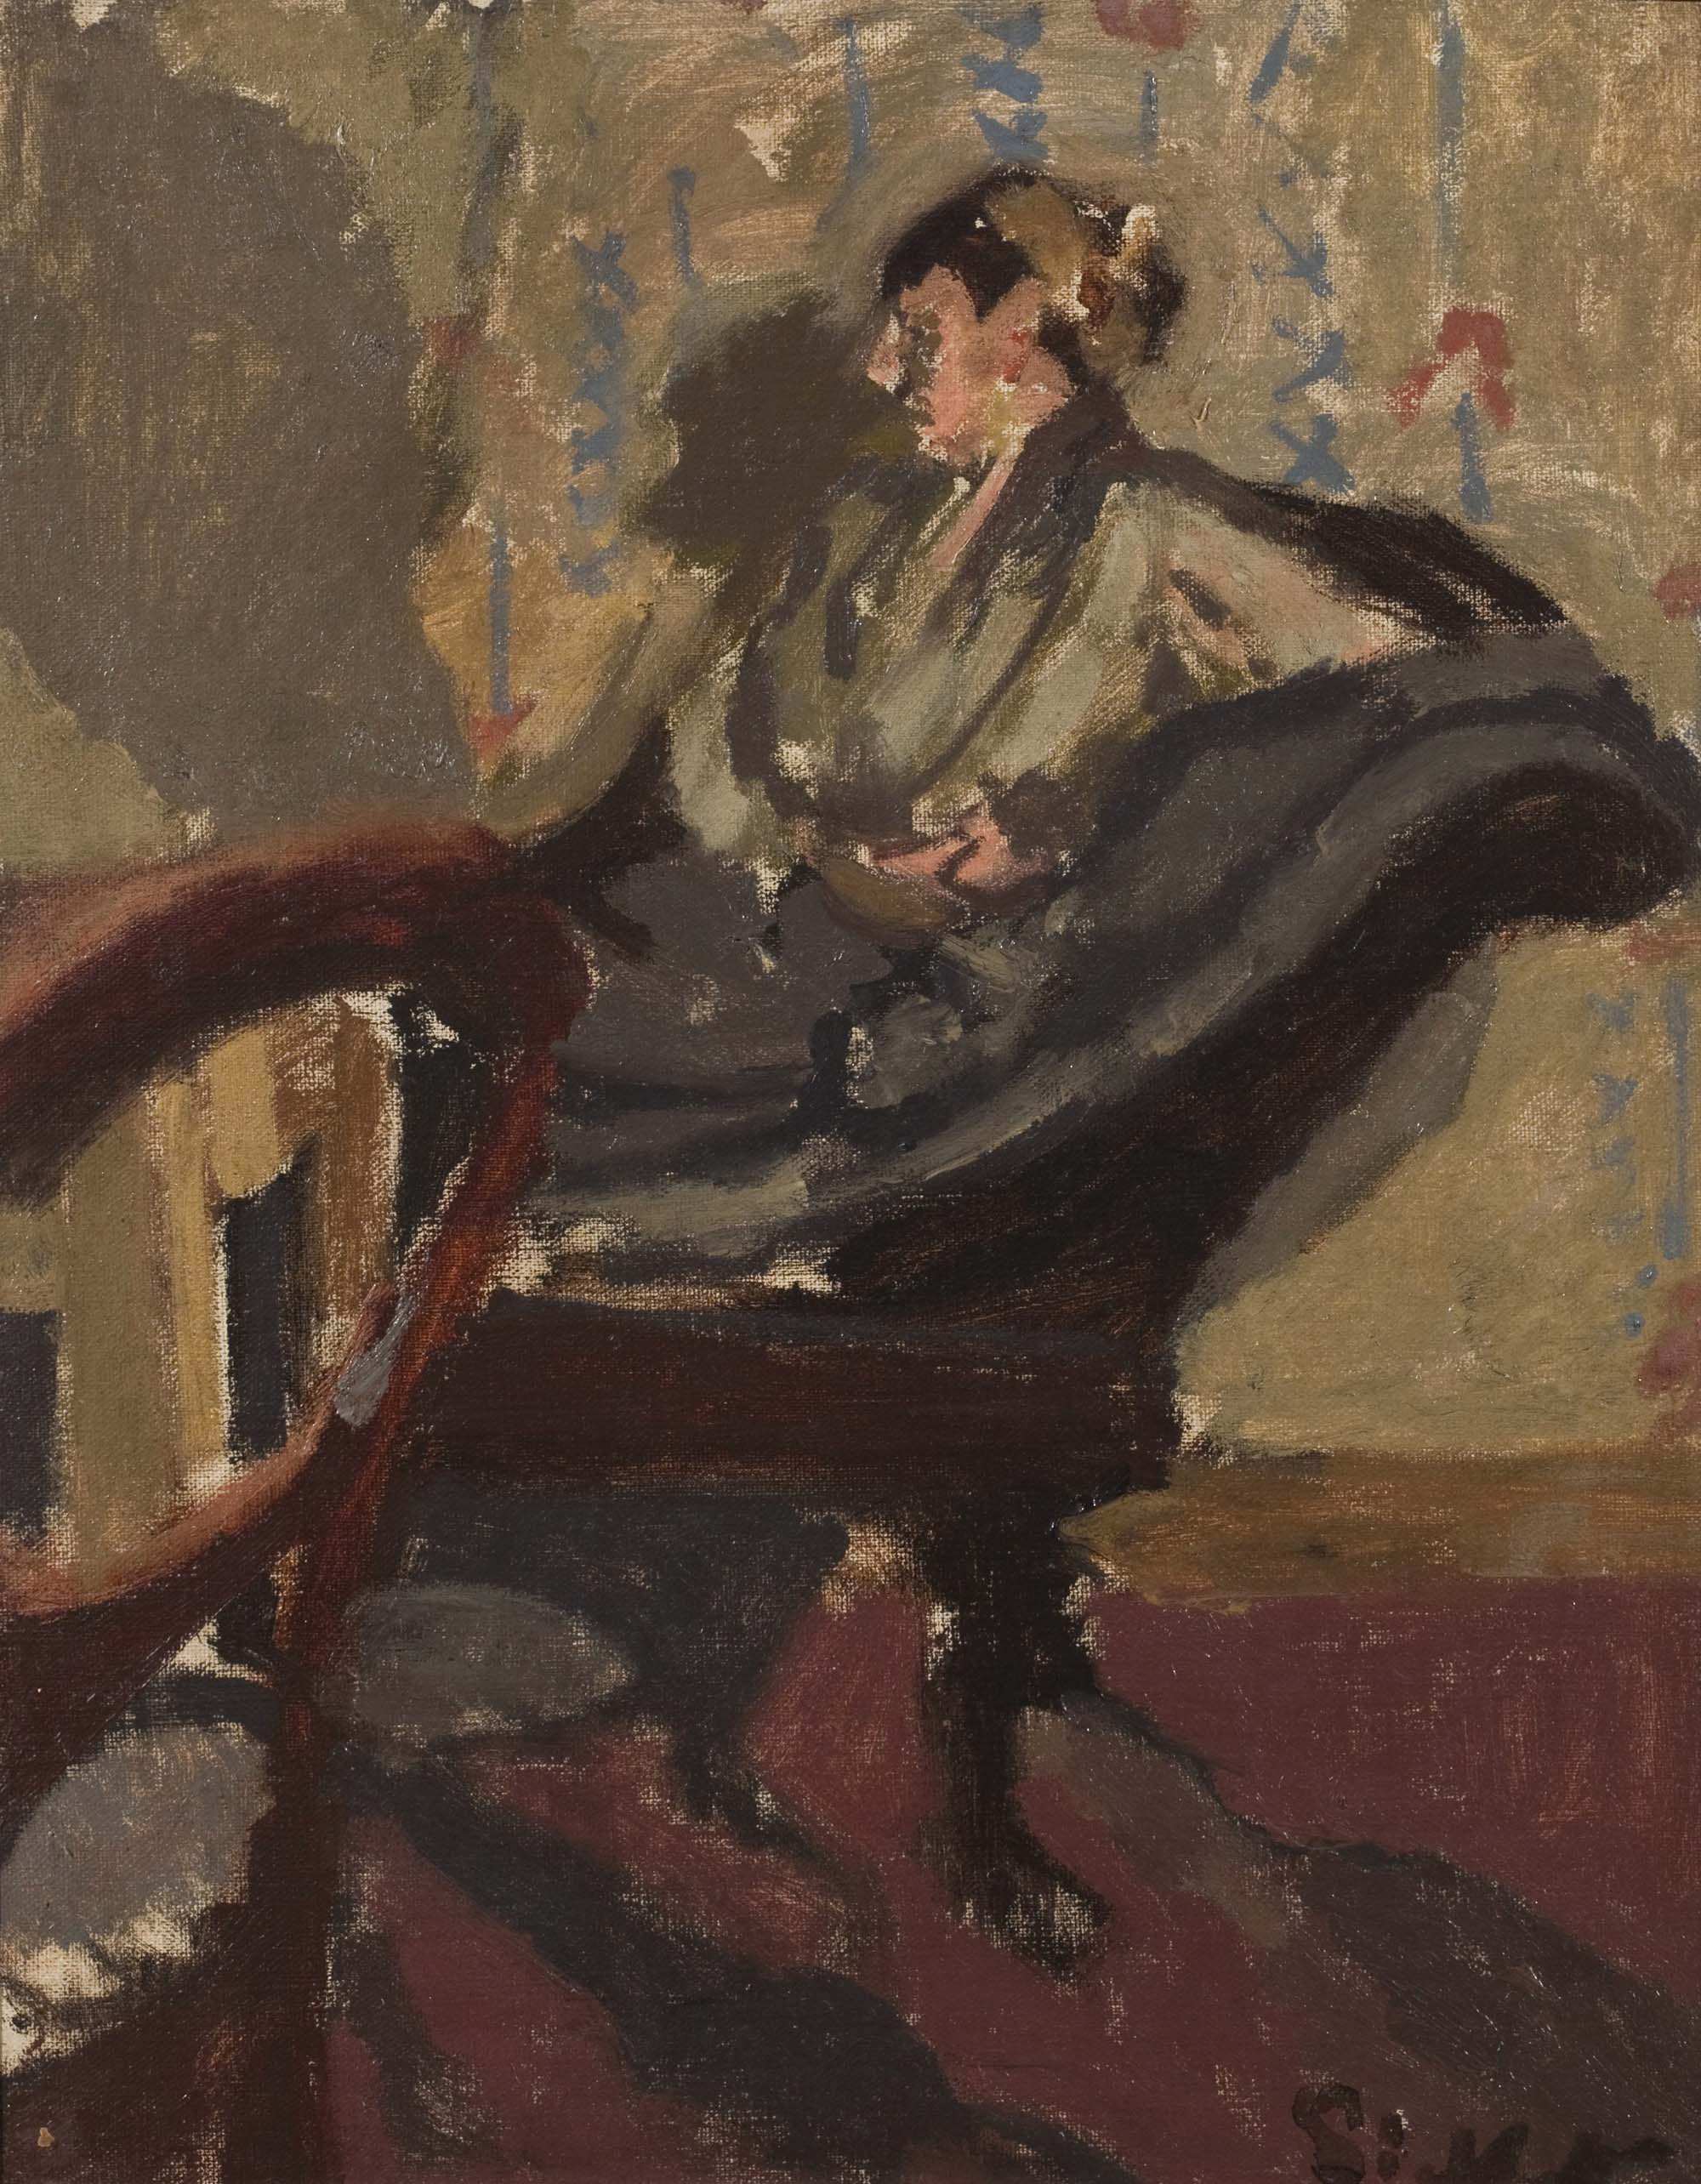 a paomth of a woman in a room with brown flocked wallpaper reclining on a sofa